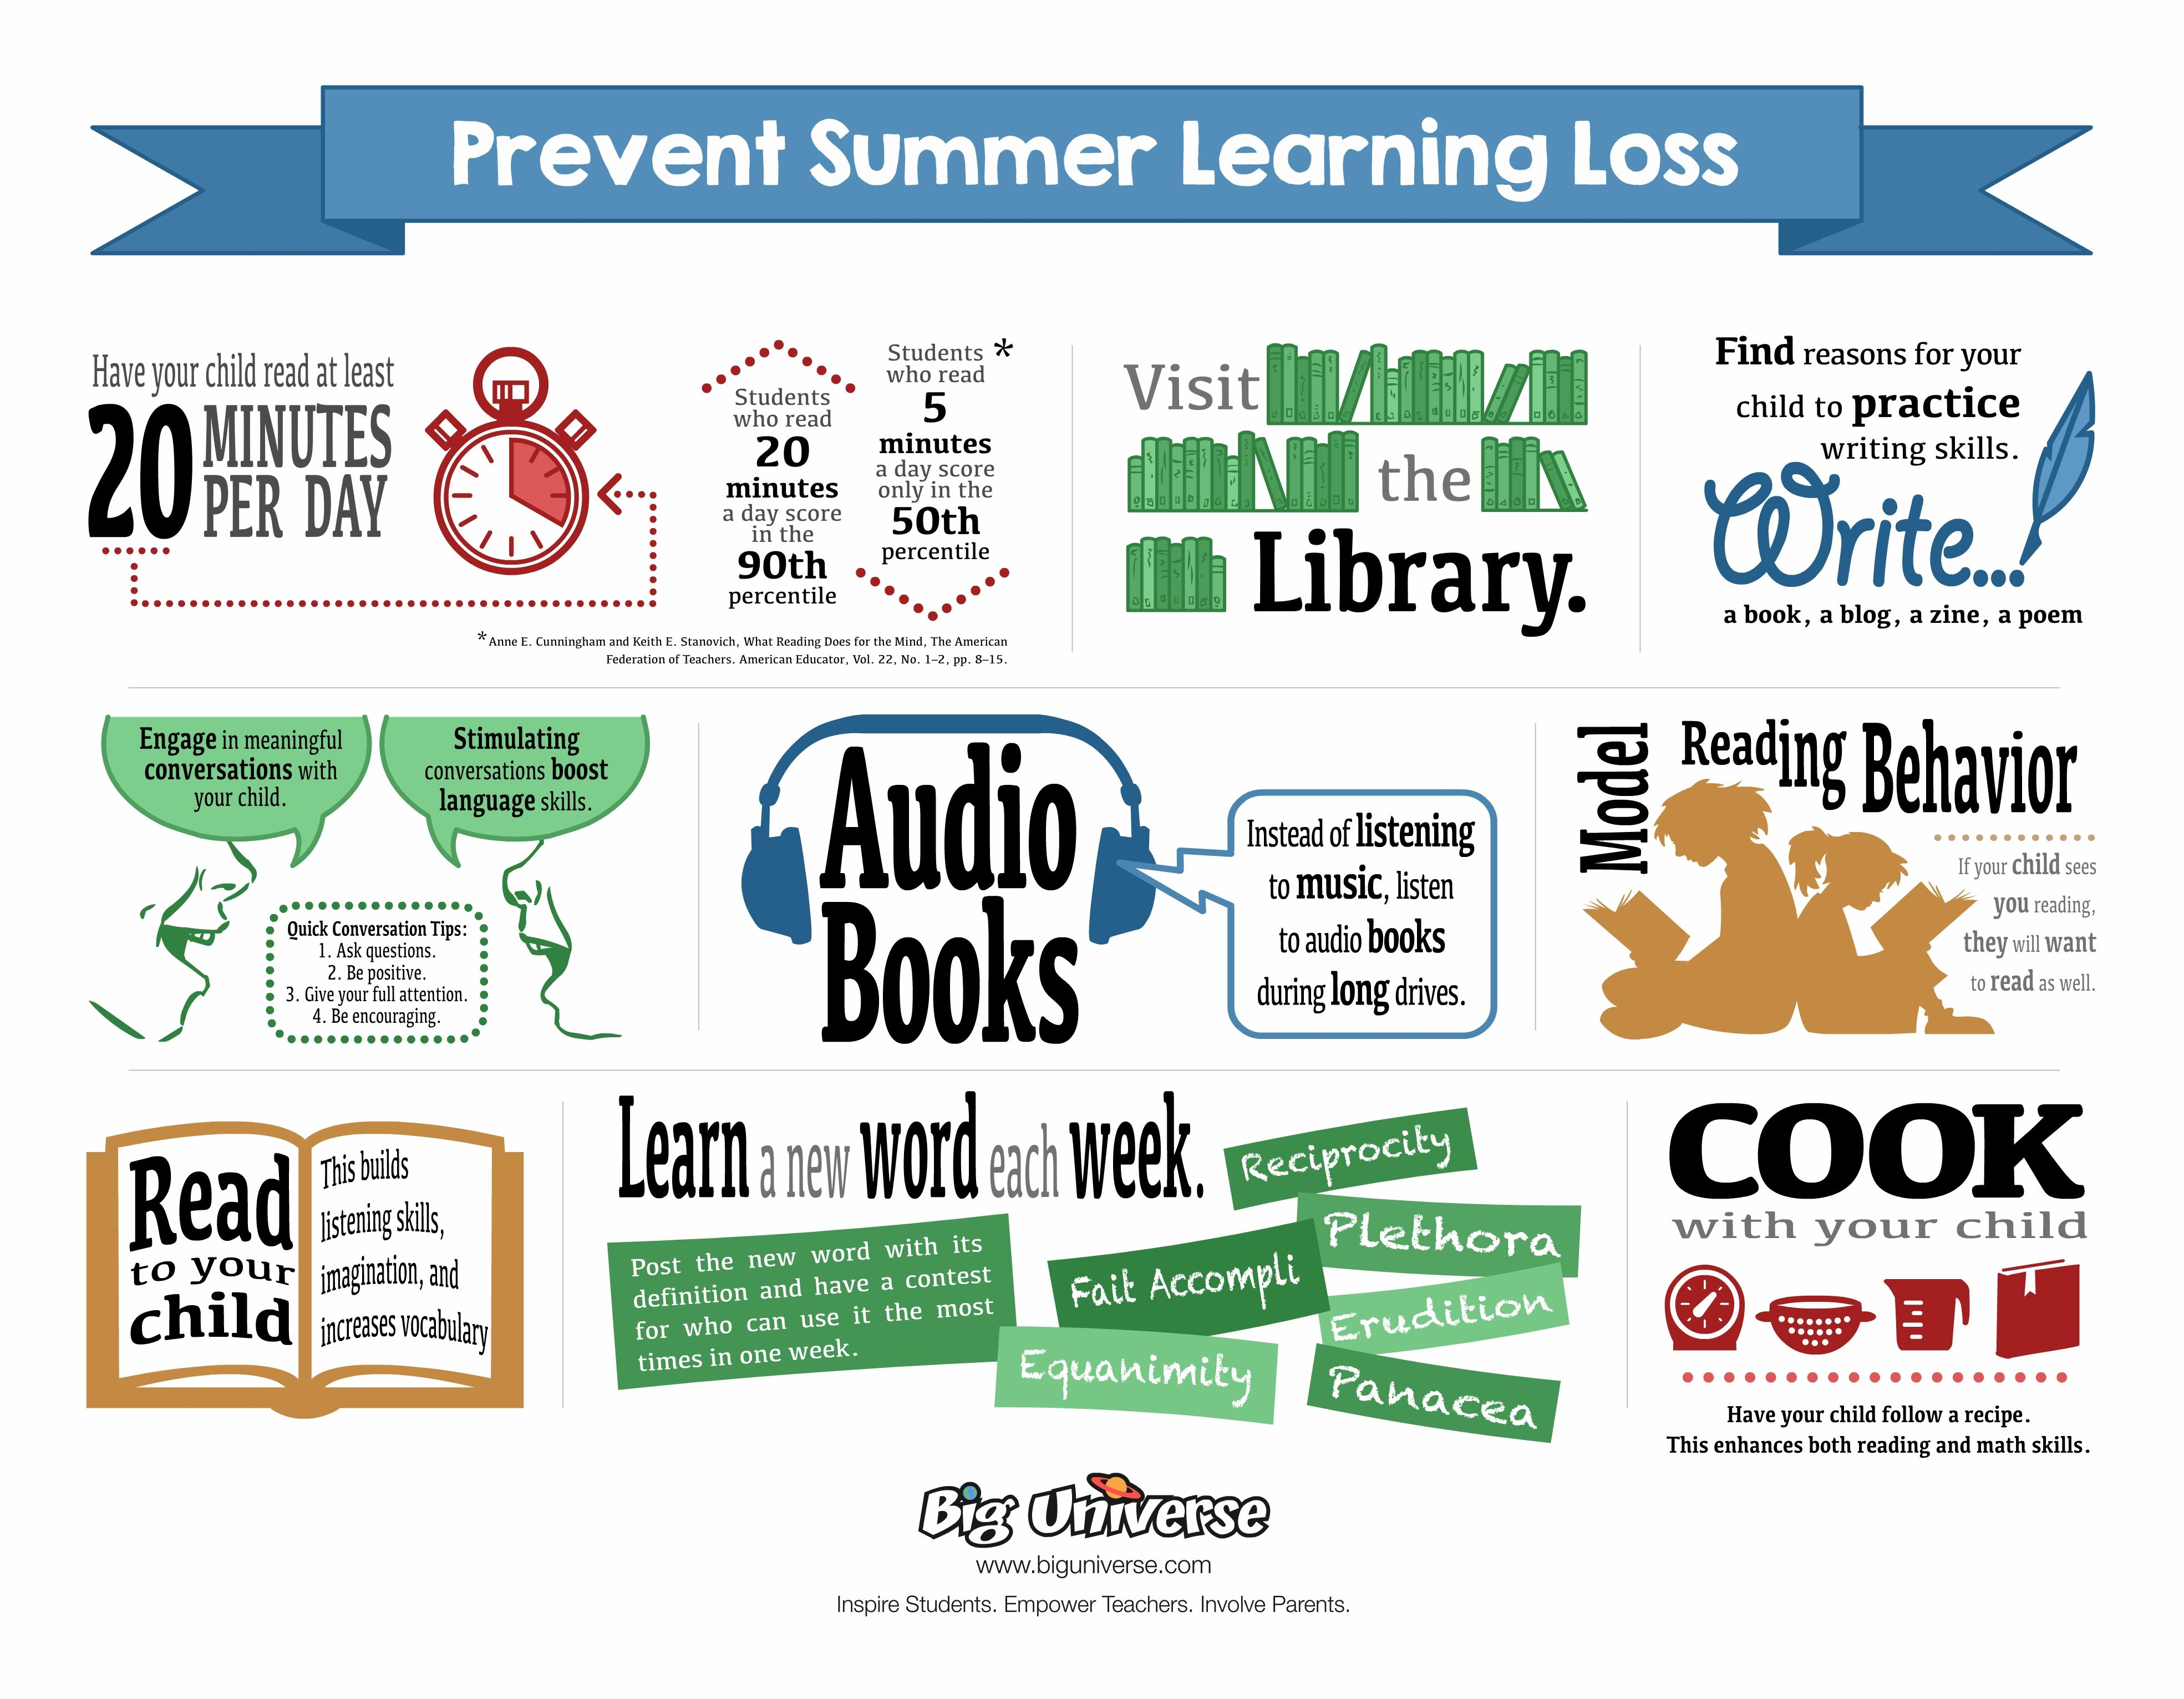 Parents Can Learn How To Prevent >> Prevent Summer Learning Loss Share These Tips With Parents To Help